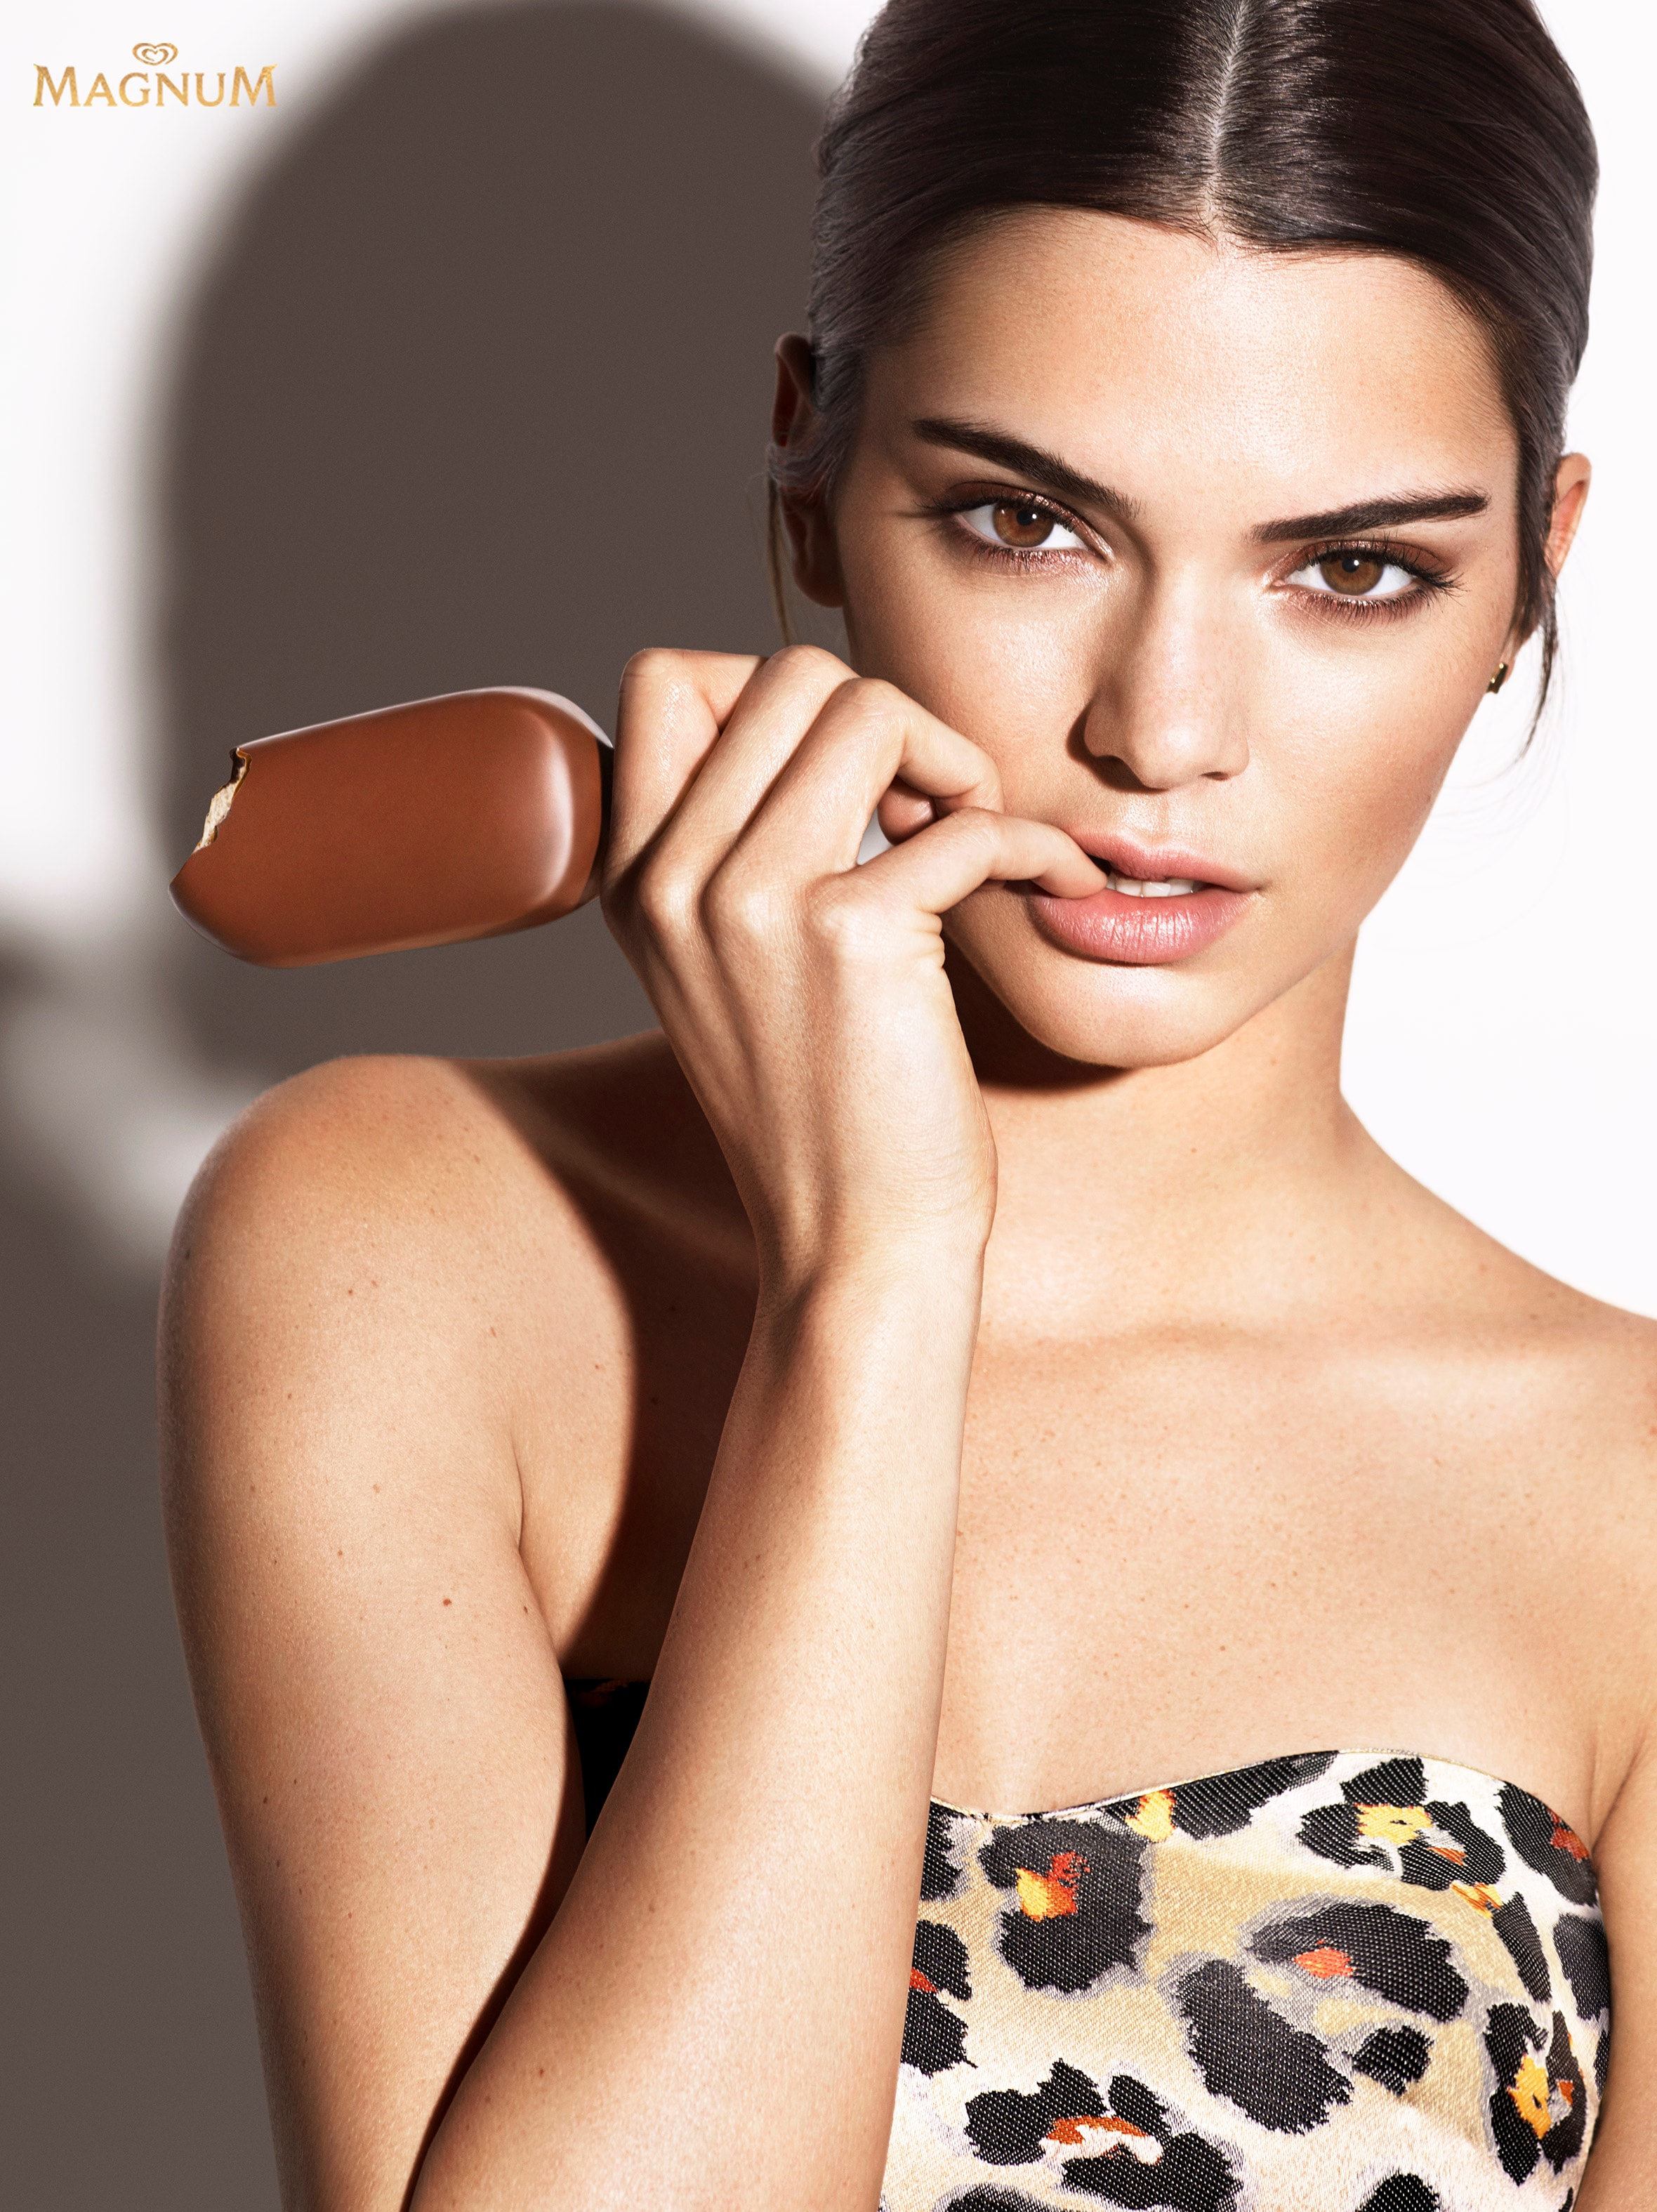 Magnum teams up with Kendall Jenner – latest news on the Release the Beast campaign below.